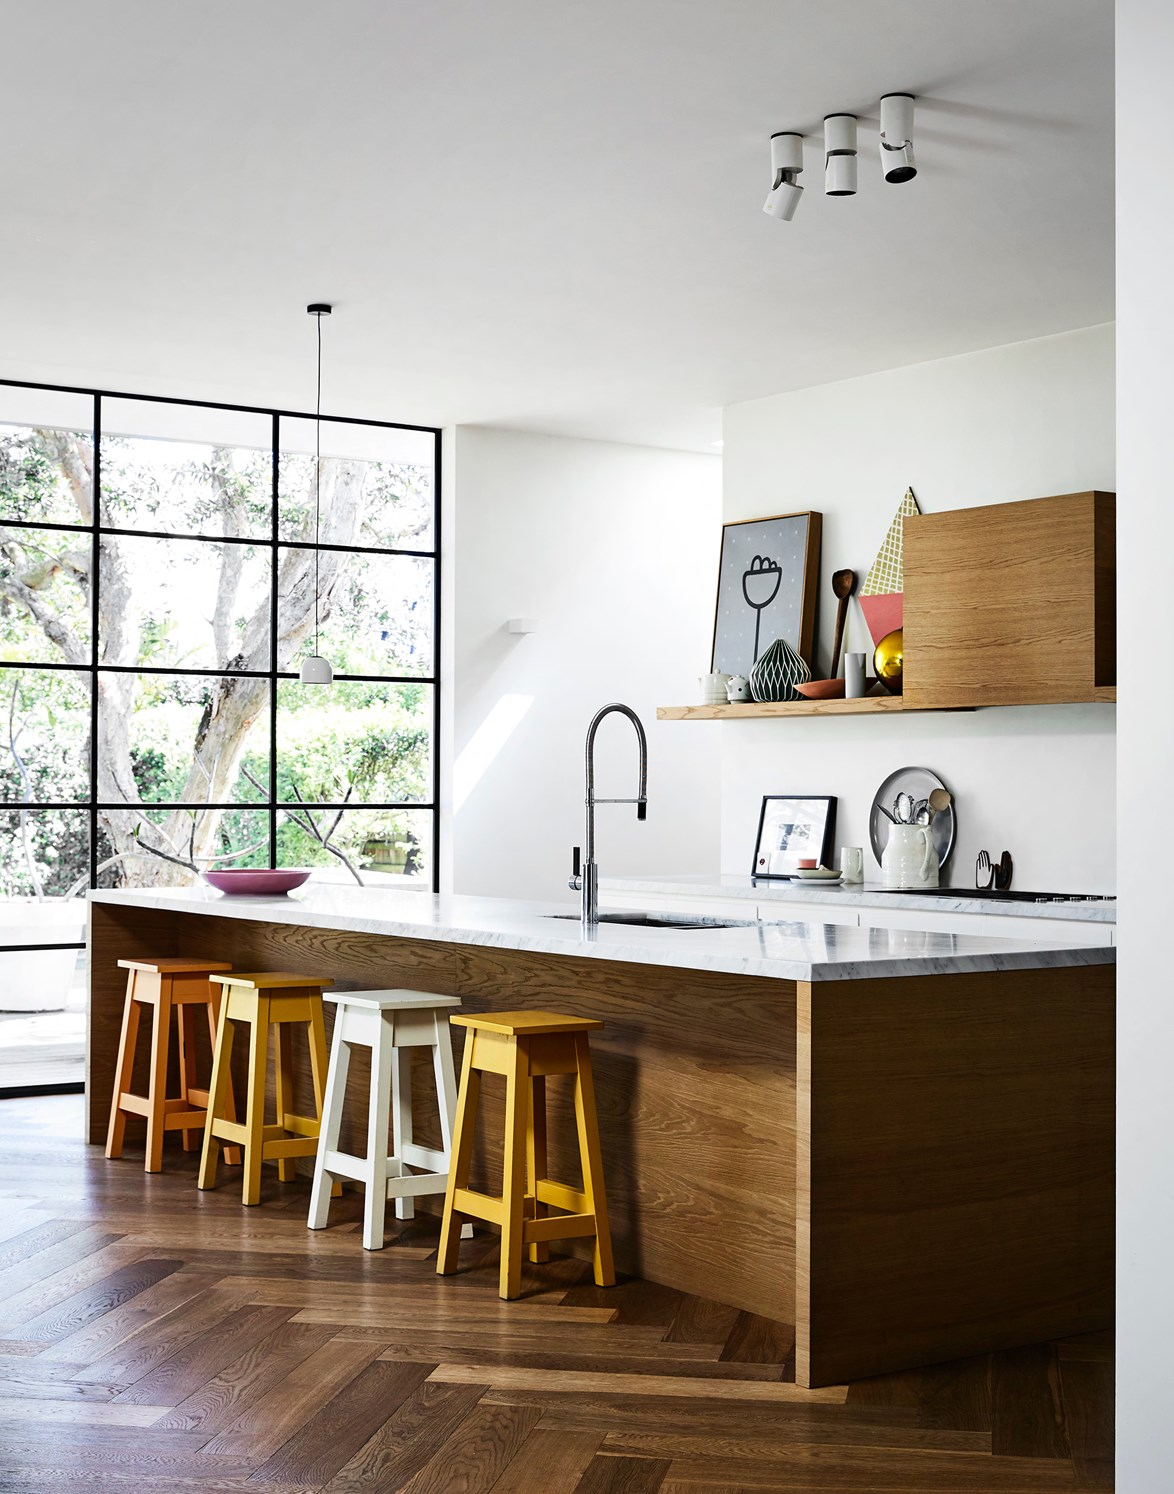 "A neutral palette allows the owner of this home, [designer and artist Rachel Castle](https://www.homestolove.com.au/rachel-castles-colourful-and-quirky-sydney-home-4729|target=""_blank""), to add colour as she pleases. Here, her own works are displayed on a floating shelf, while mismatched colourful bar stools add a playful touch."